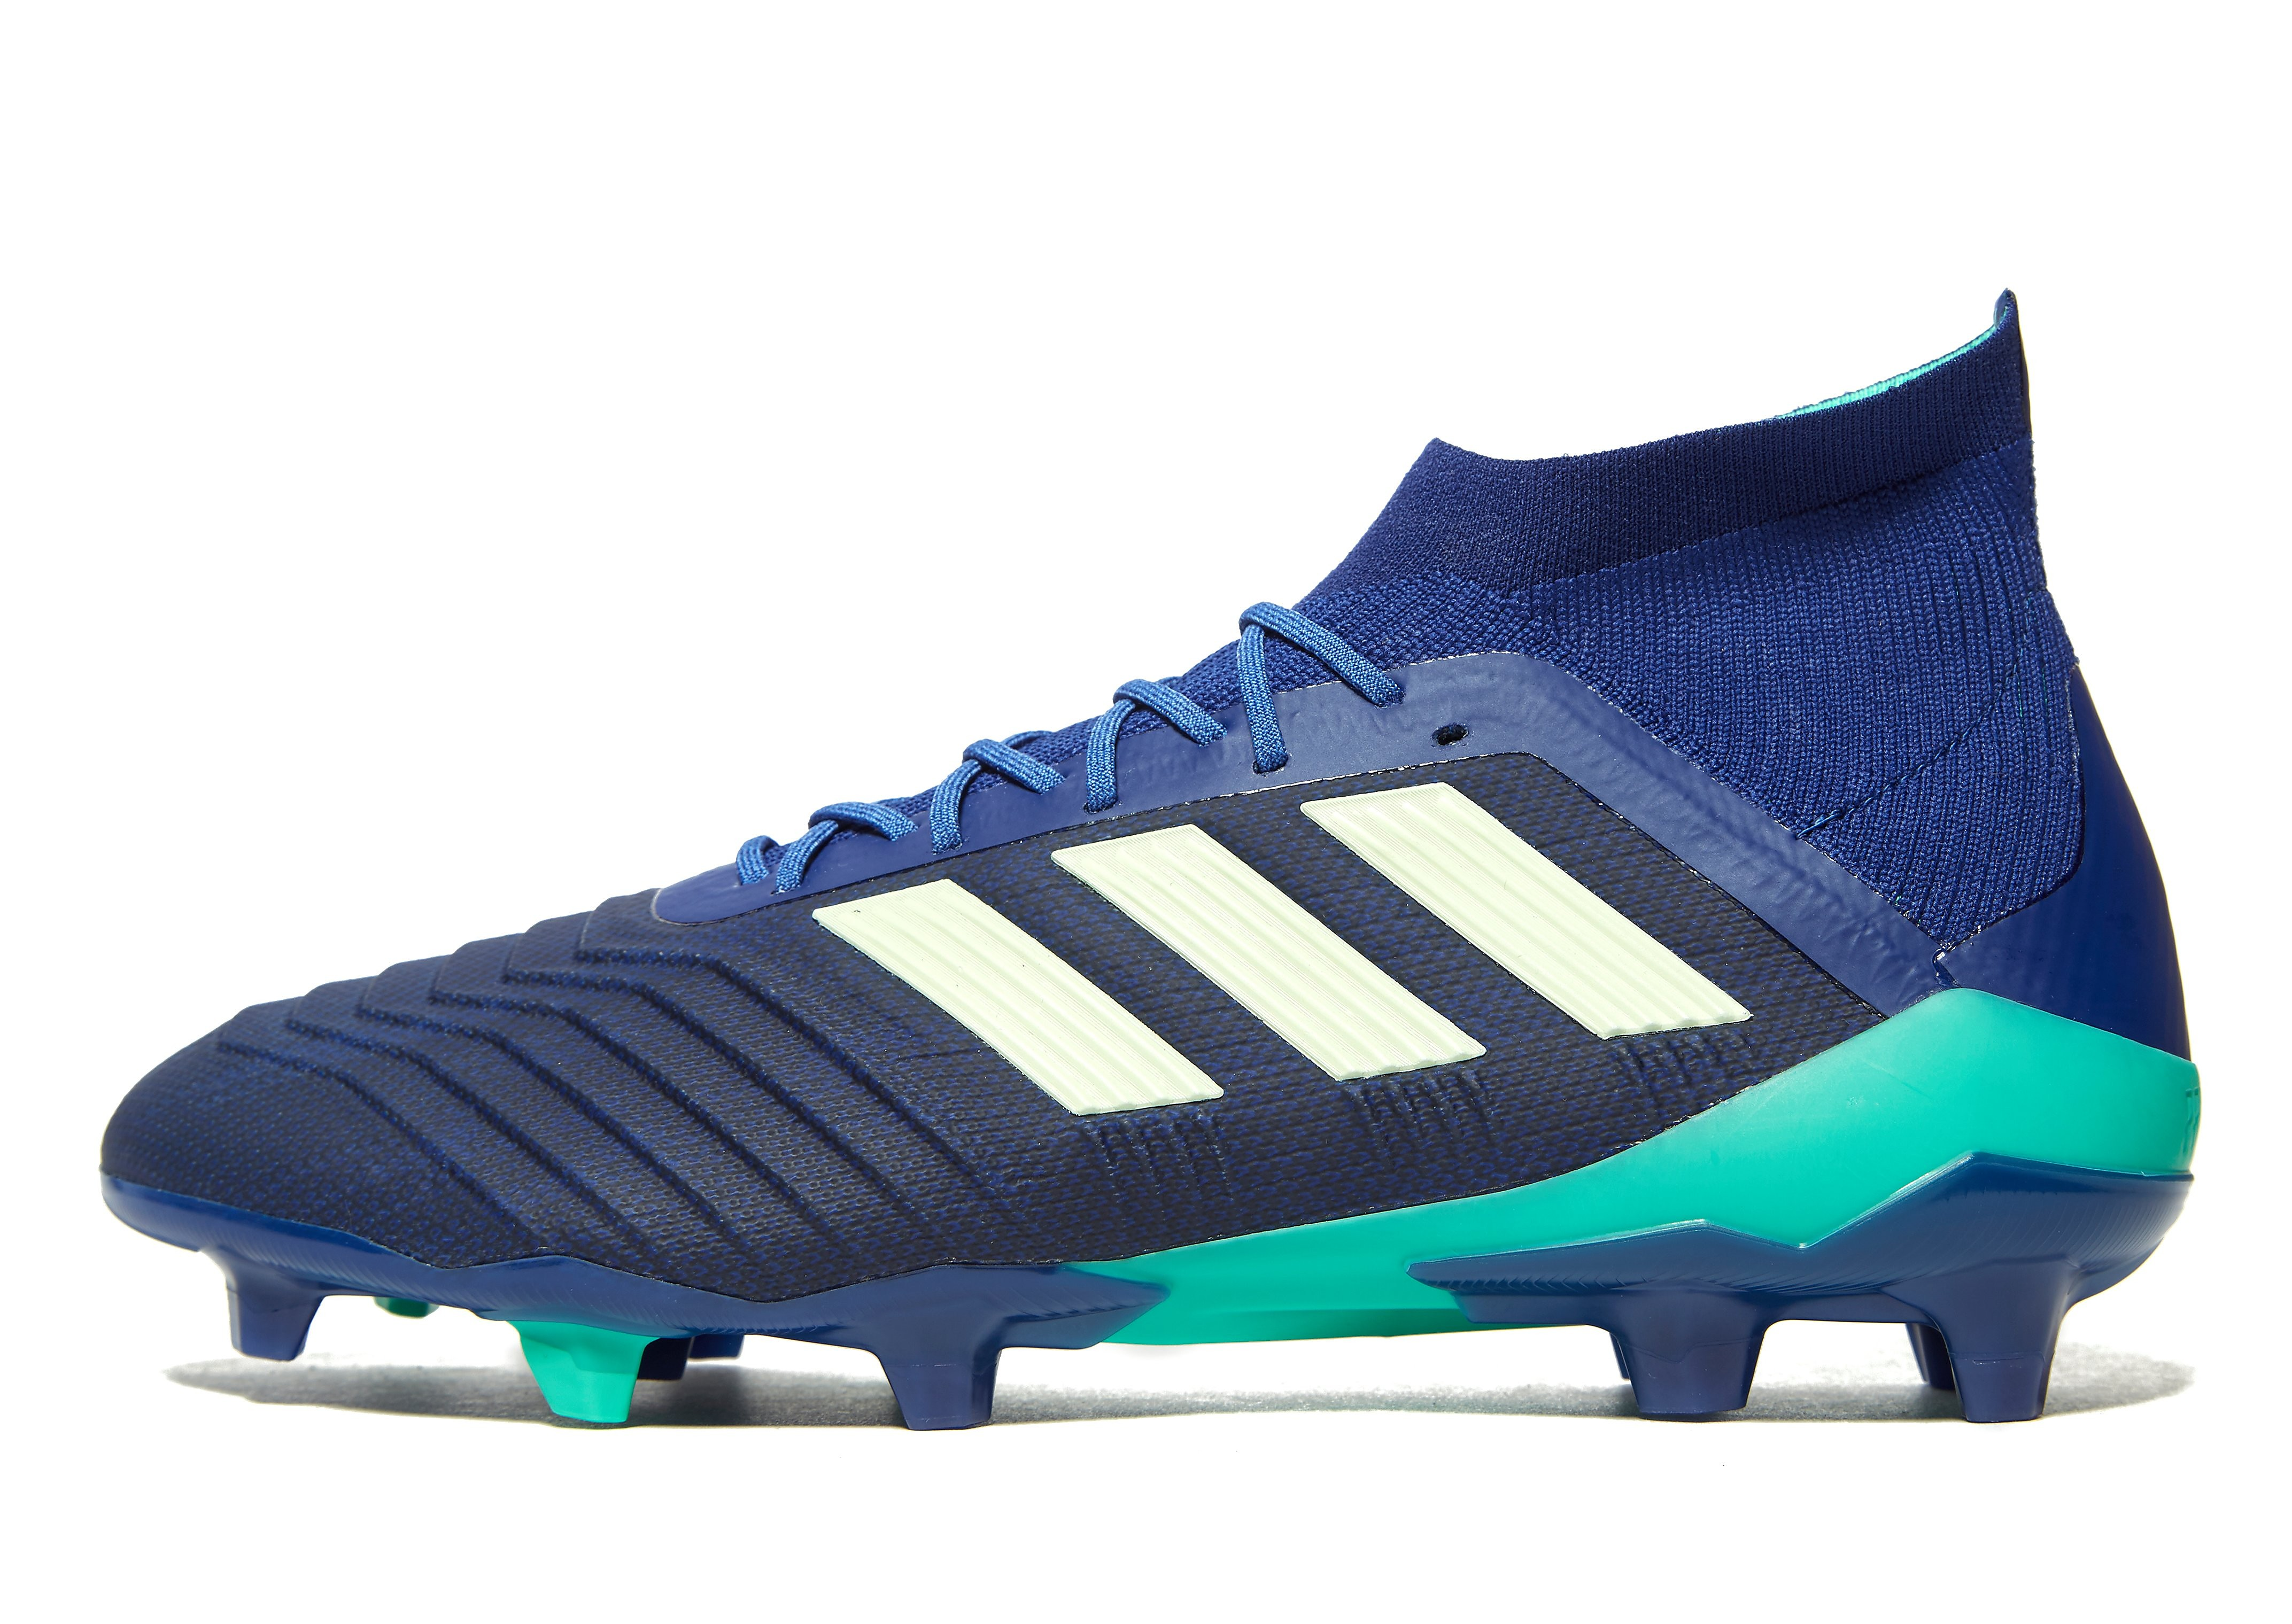 adidas Deadly Strike Predator 18.1 FG